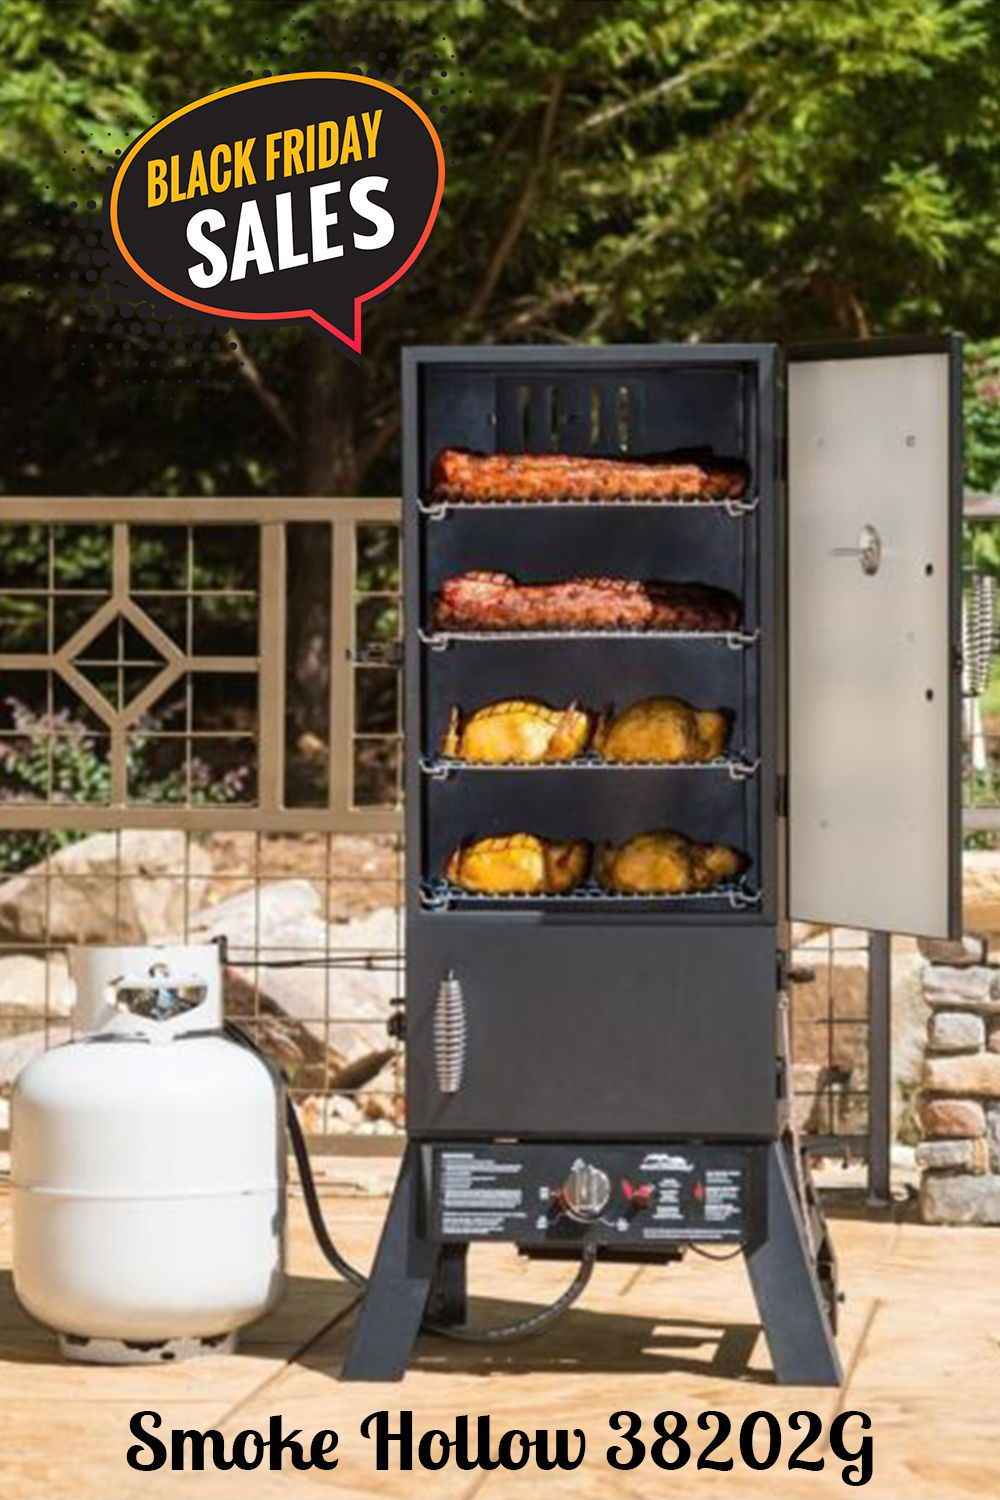 Grills Forever Top Rated Grills Smokers Reviews And Bbq Recipes Natural Gas Smoker Propane Smokers Grilling